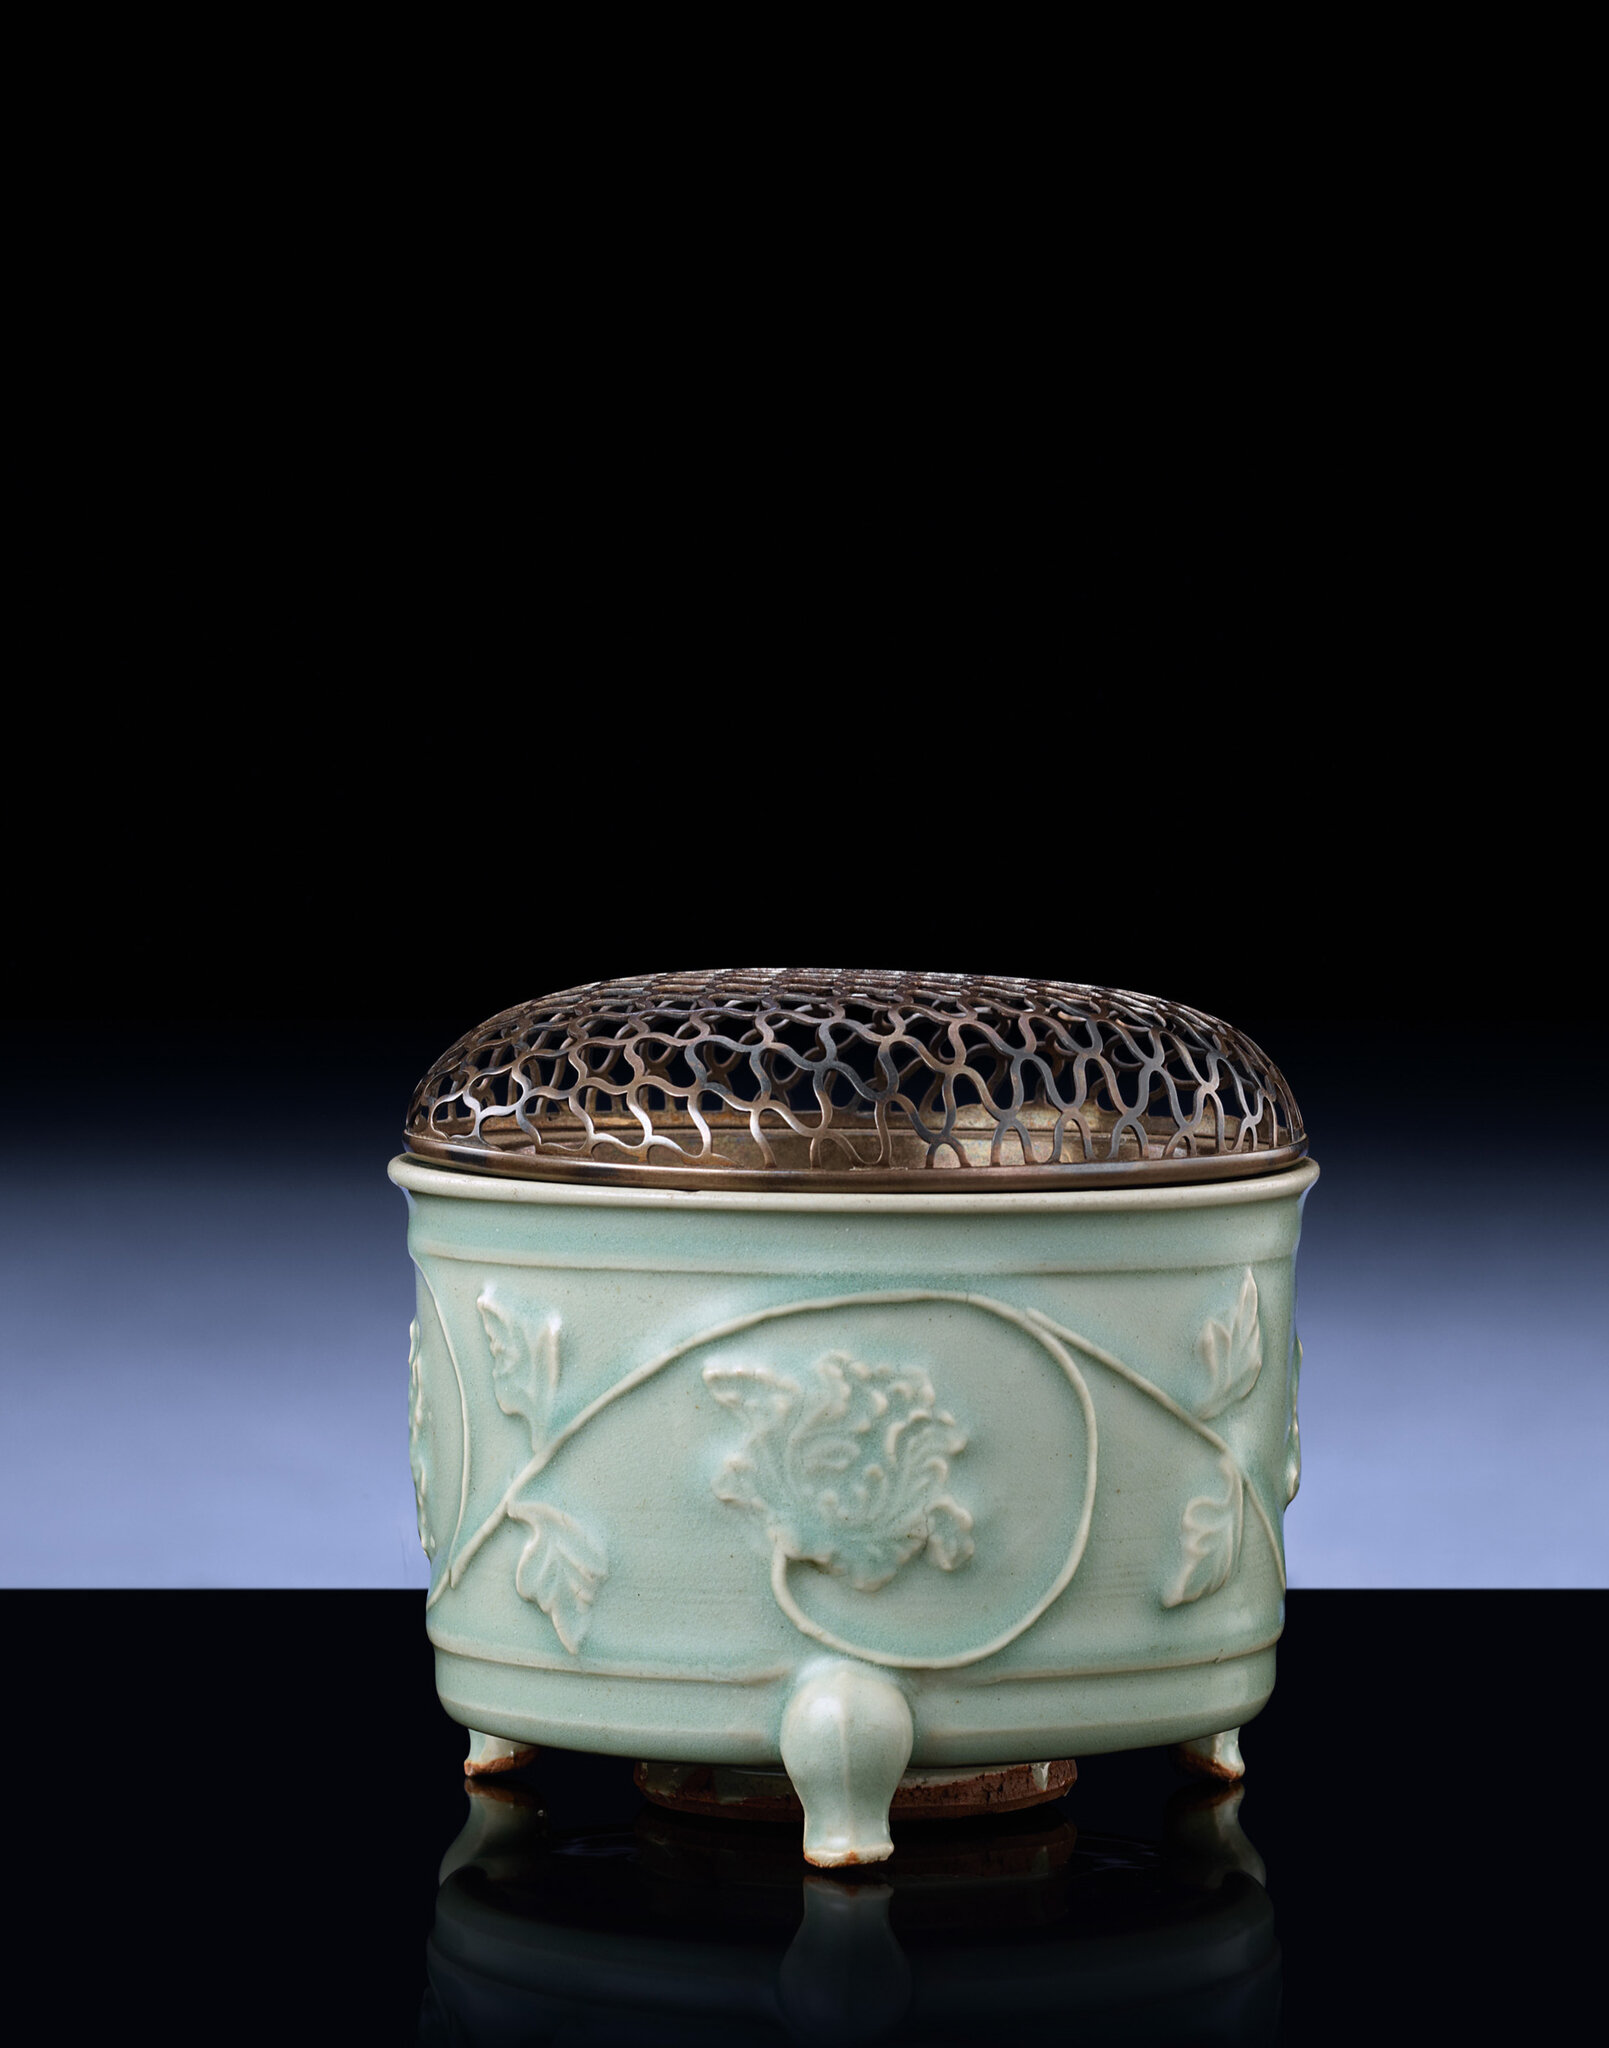 A Longquan celadon relief-decorated tripod censer, Southern Song-Yuan Dynasty, 13th-14th century